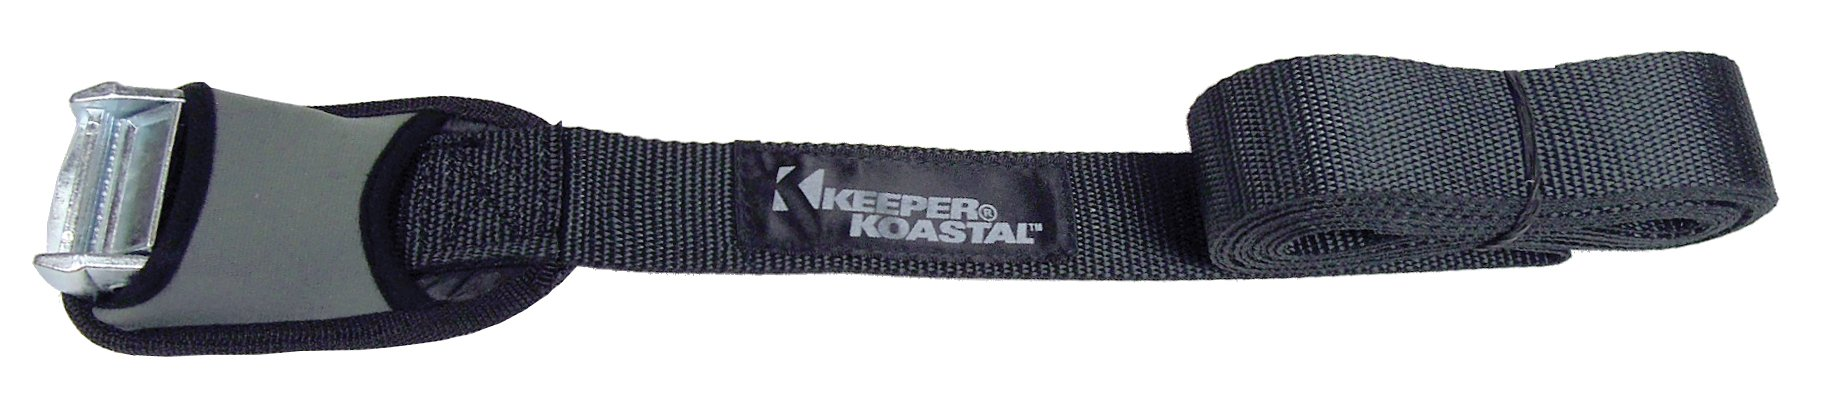 Keeper (07512 Koastal 12' x 1-1/2'' Lashing Strap with Protective Cover, (Pack of 2)